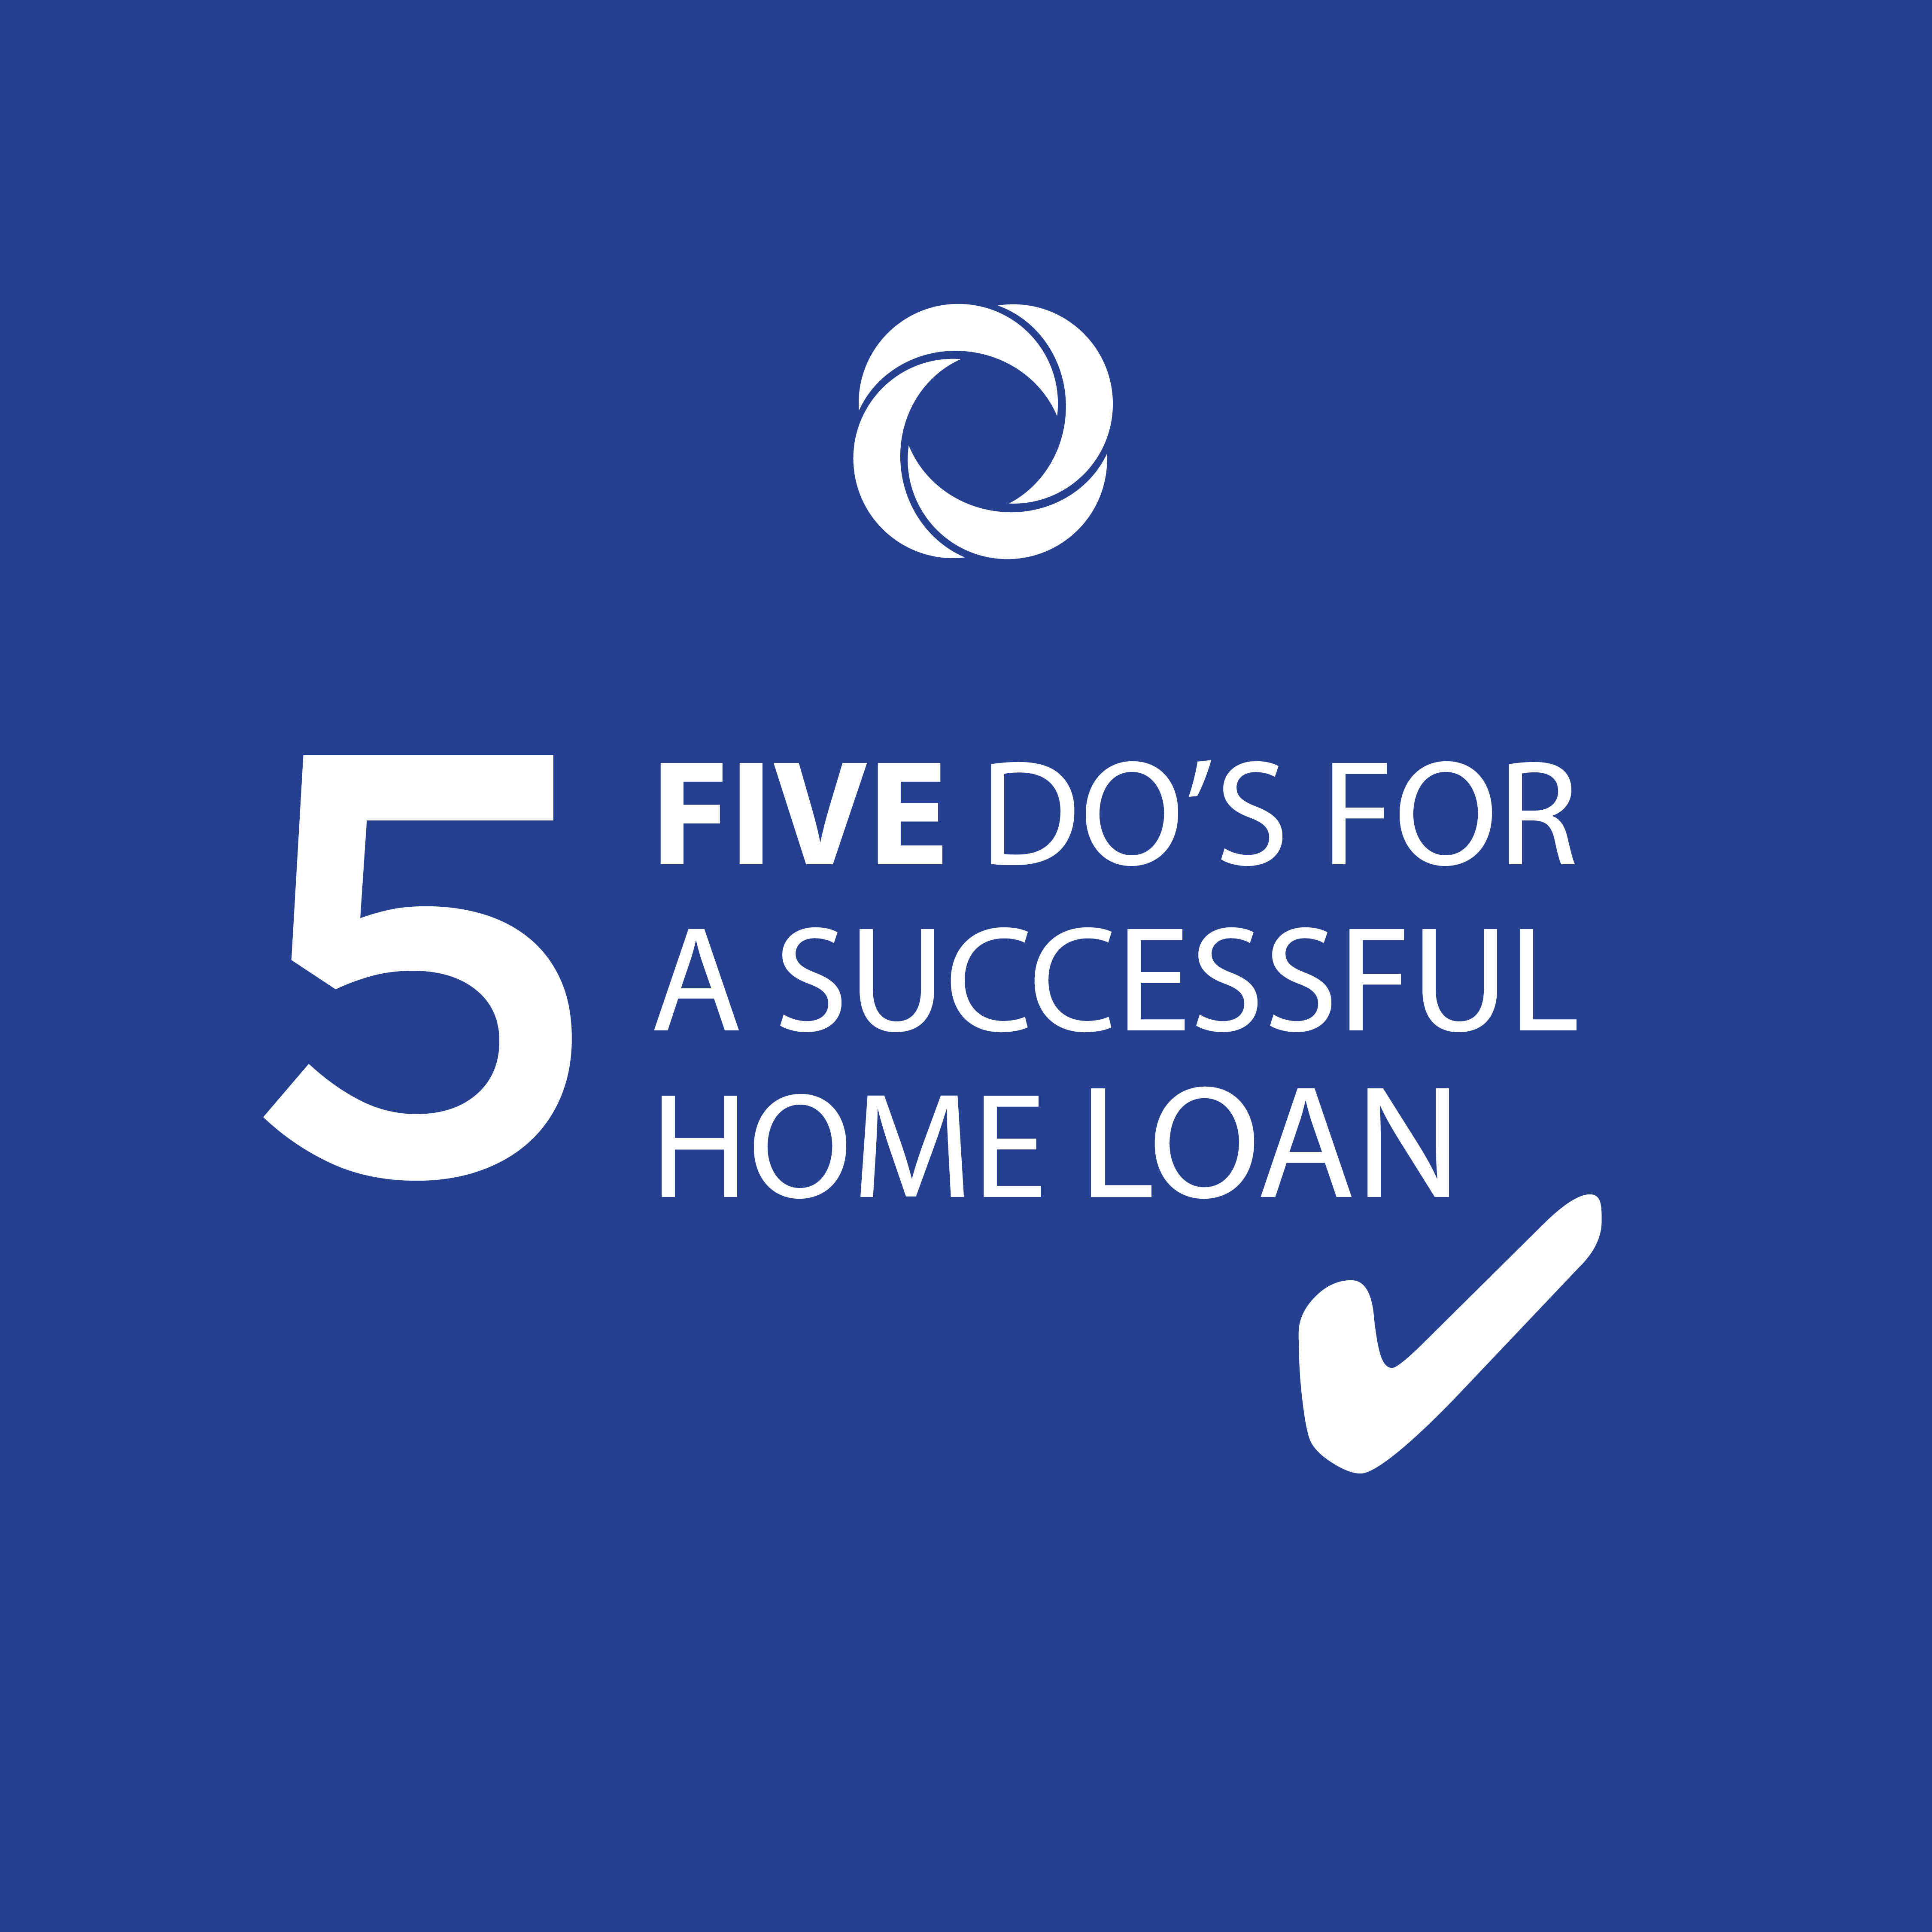 Five Home Loan Do's from the Mortgage Experts